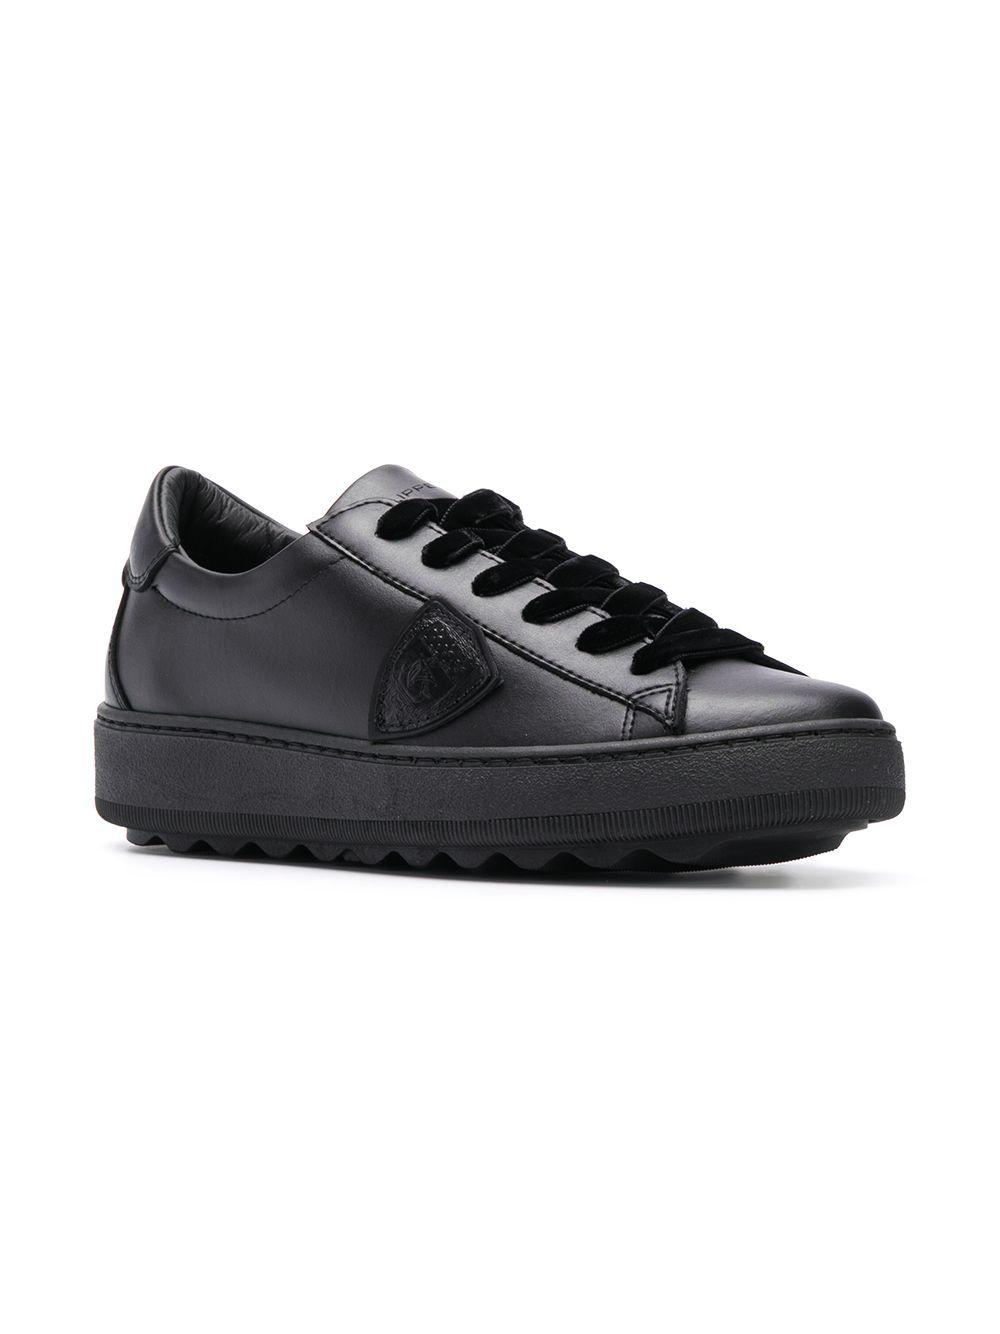 Philippe Model Leather Medeleine Sneakers in Black